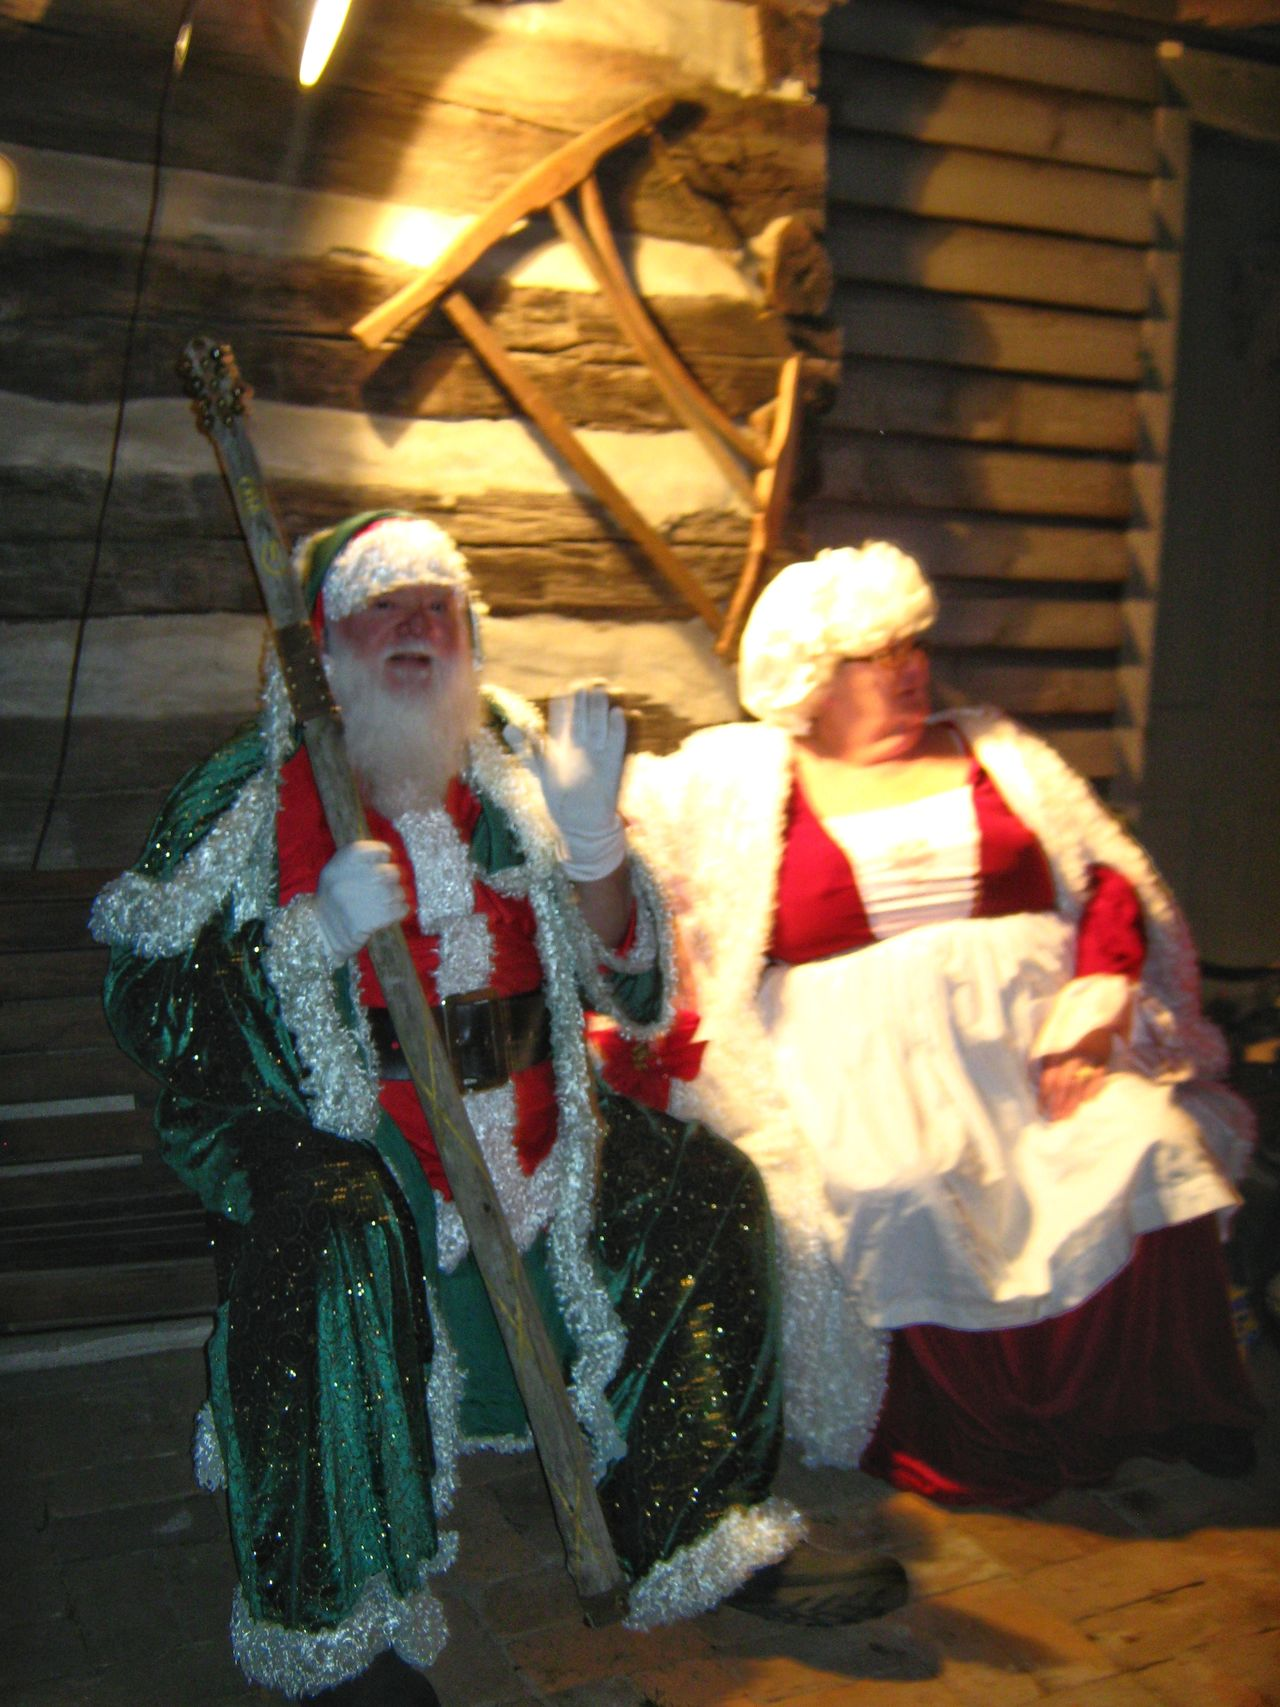 Finding New Frontiers Mr. & Mrs. Clause! Merry Christmas! Holiday - Event Period Costume Christmas Christmas Tradition Christmas Spirit Christmas 2016 Christmas Around The World Log Cabin Antique Architecture Antique Building ANTIQUE TOOLS.... Christmas Party Santa Claus Saint Nicholas Mrs Clause